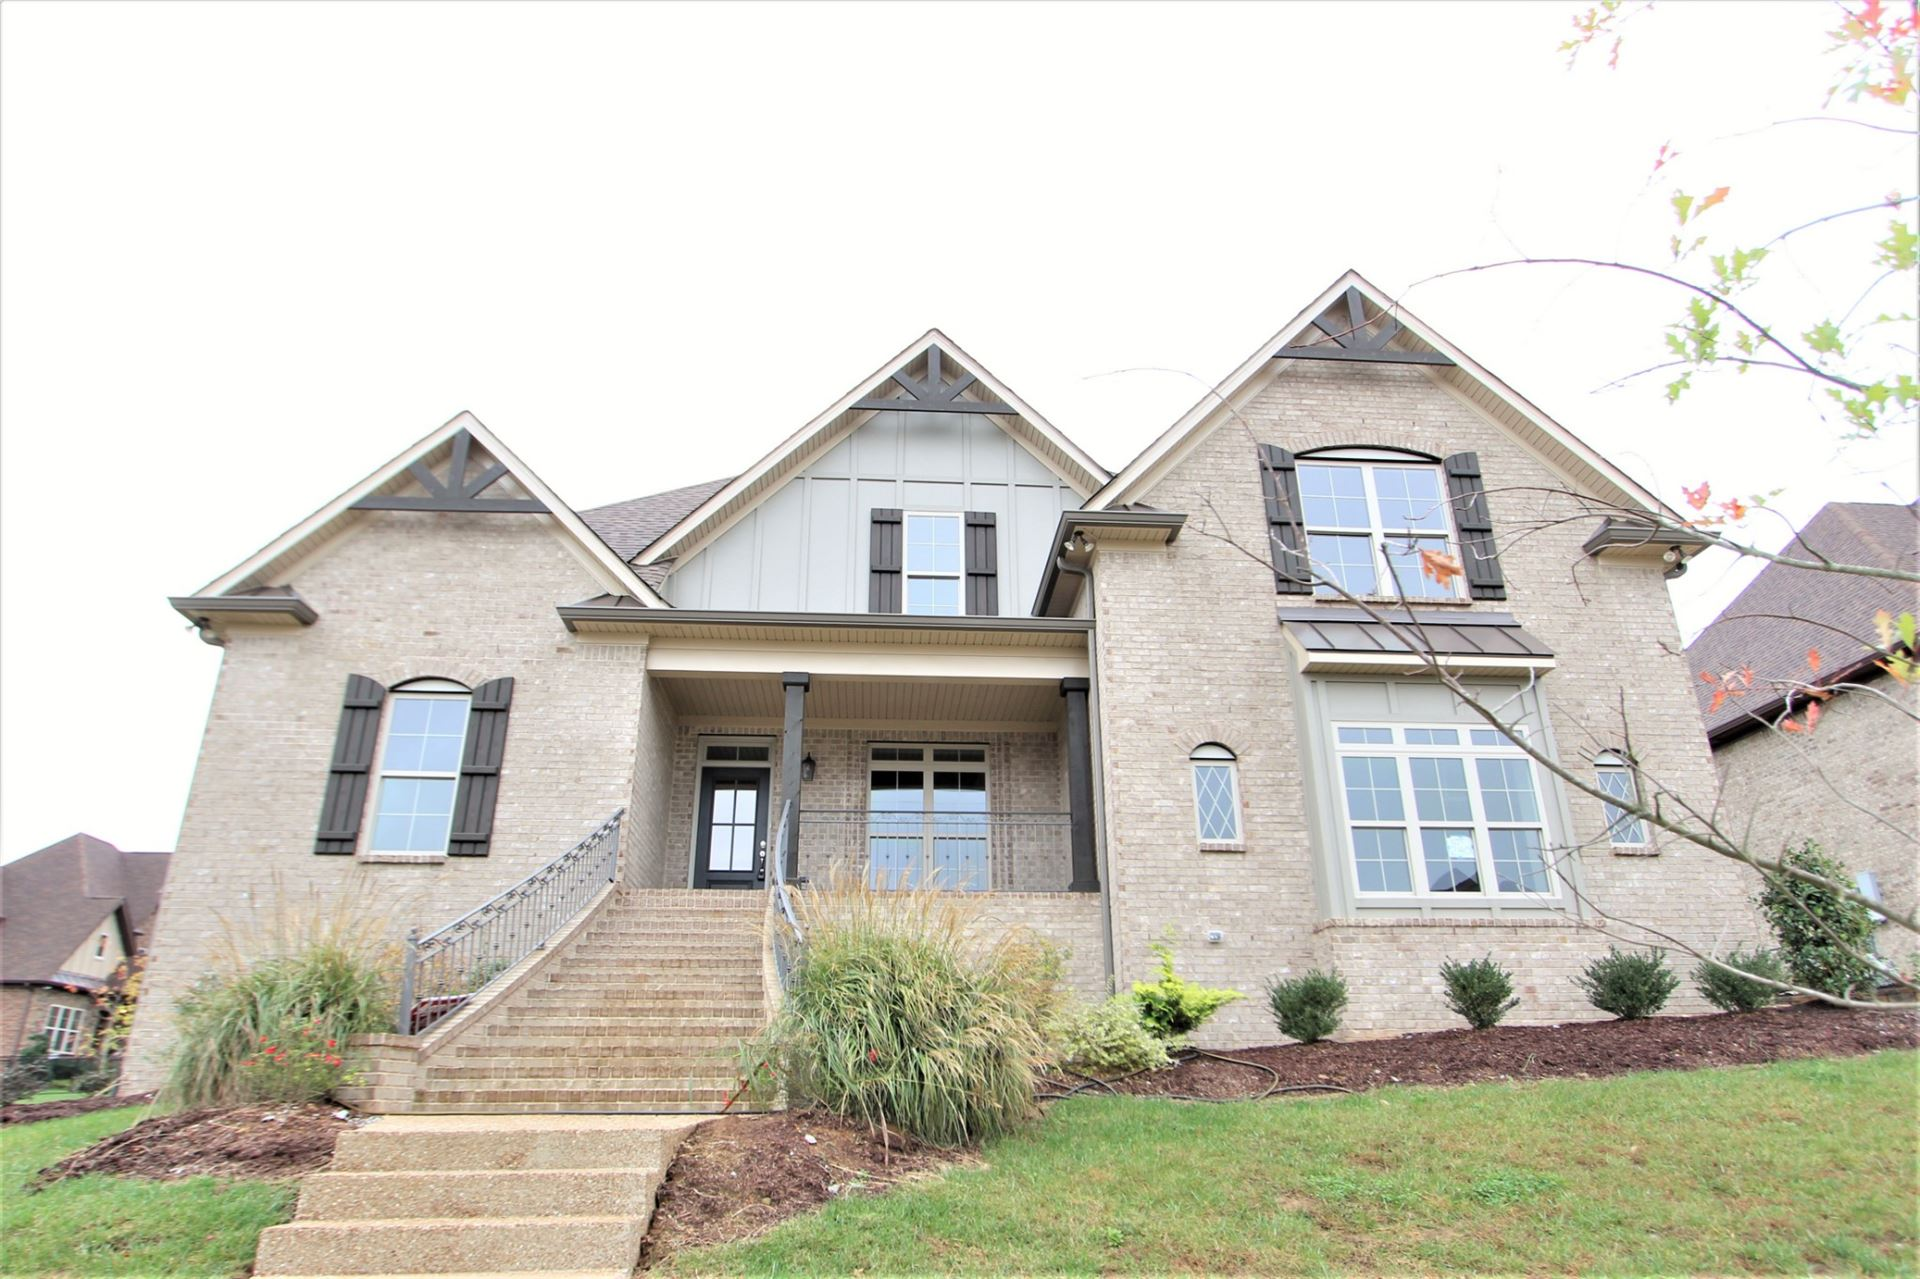 441 Whitley Way #240-C, Mount Juliet, TN 37122 - MLS#: 2184713